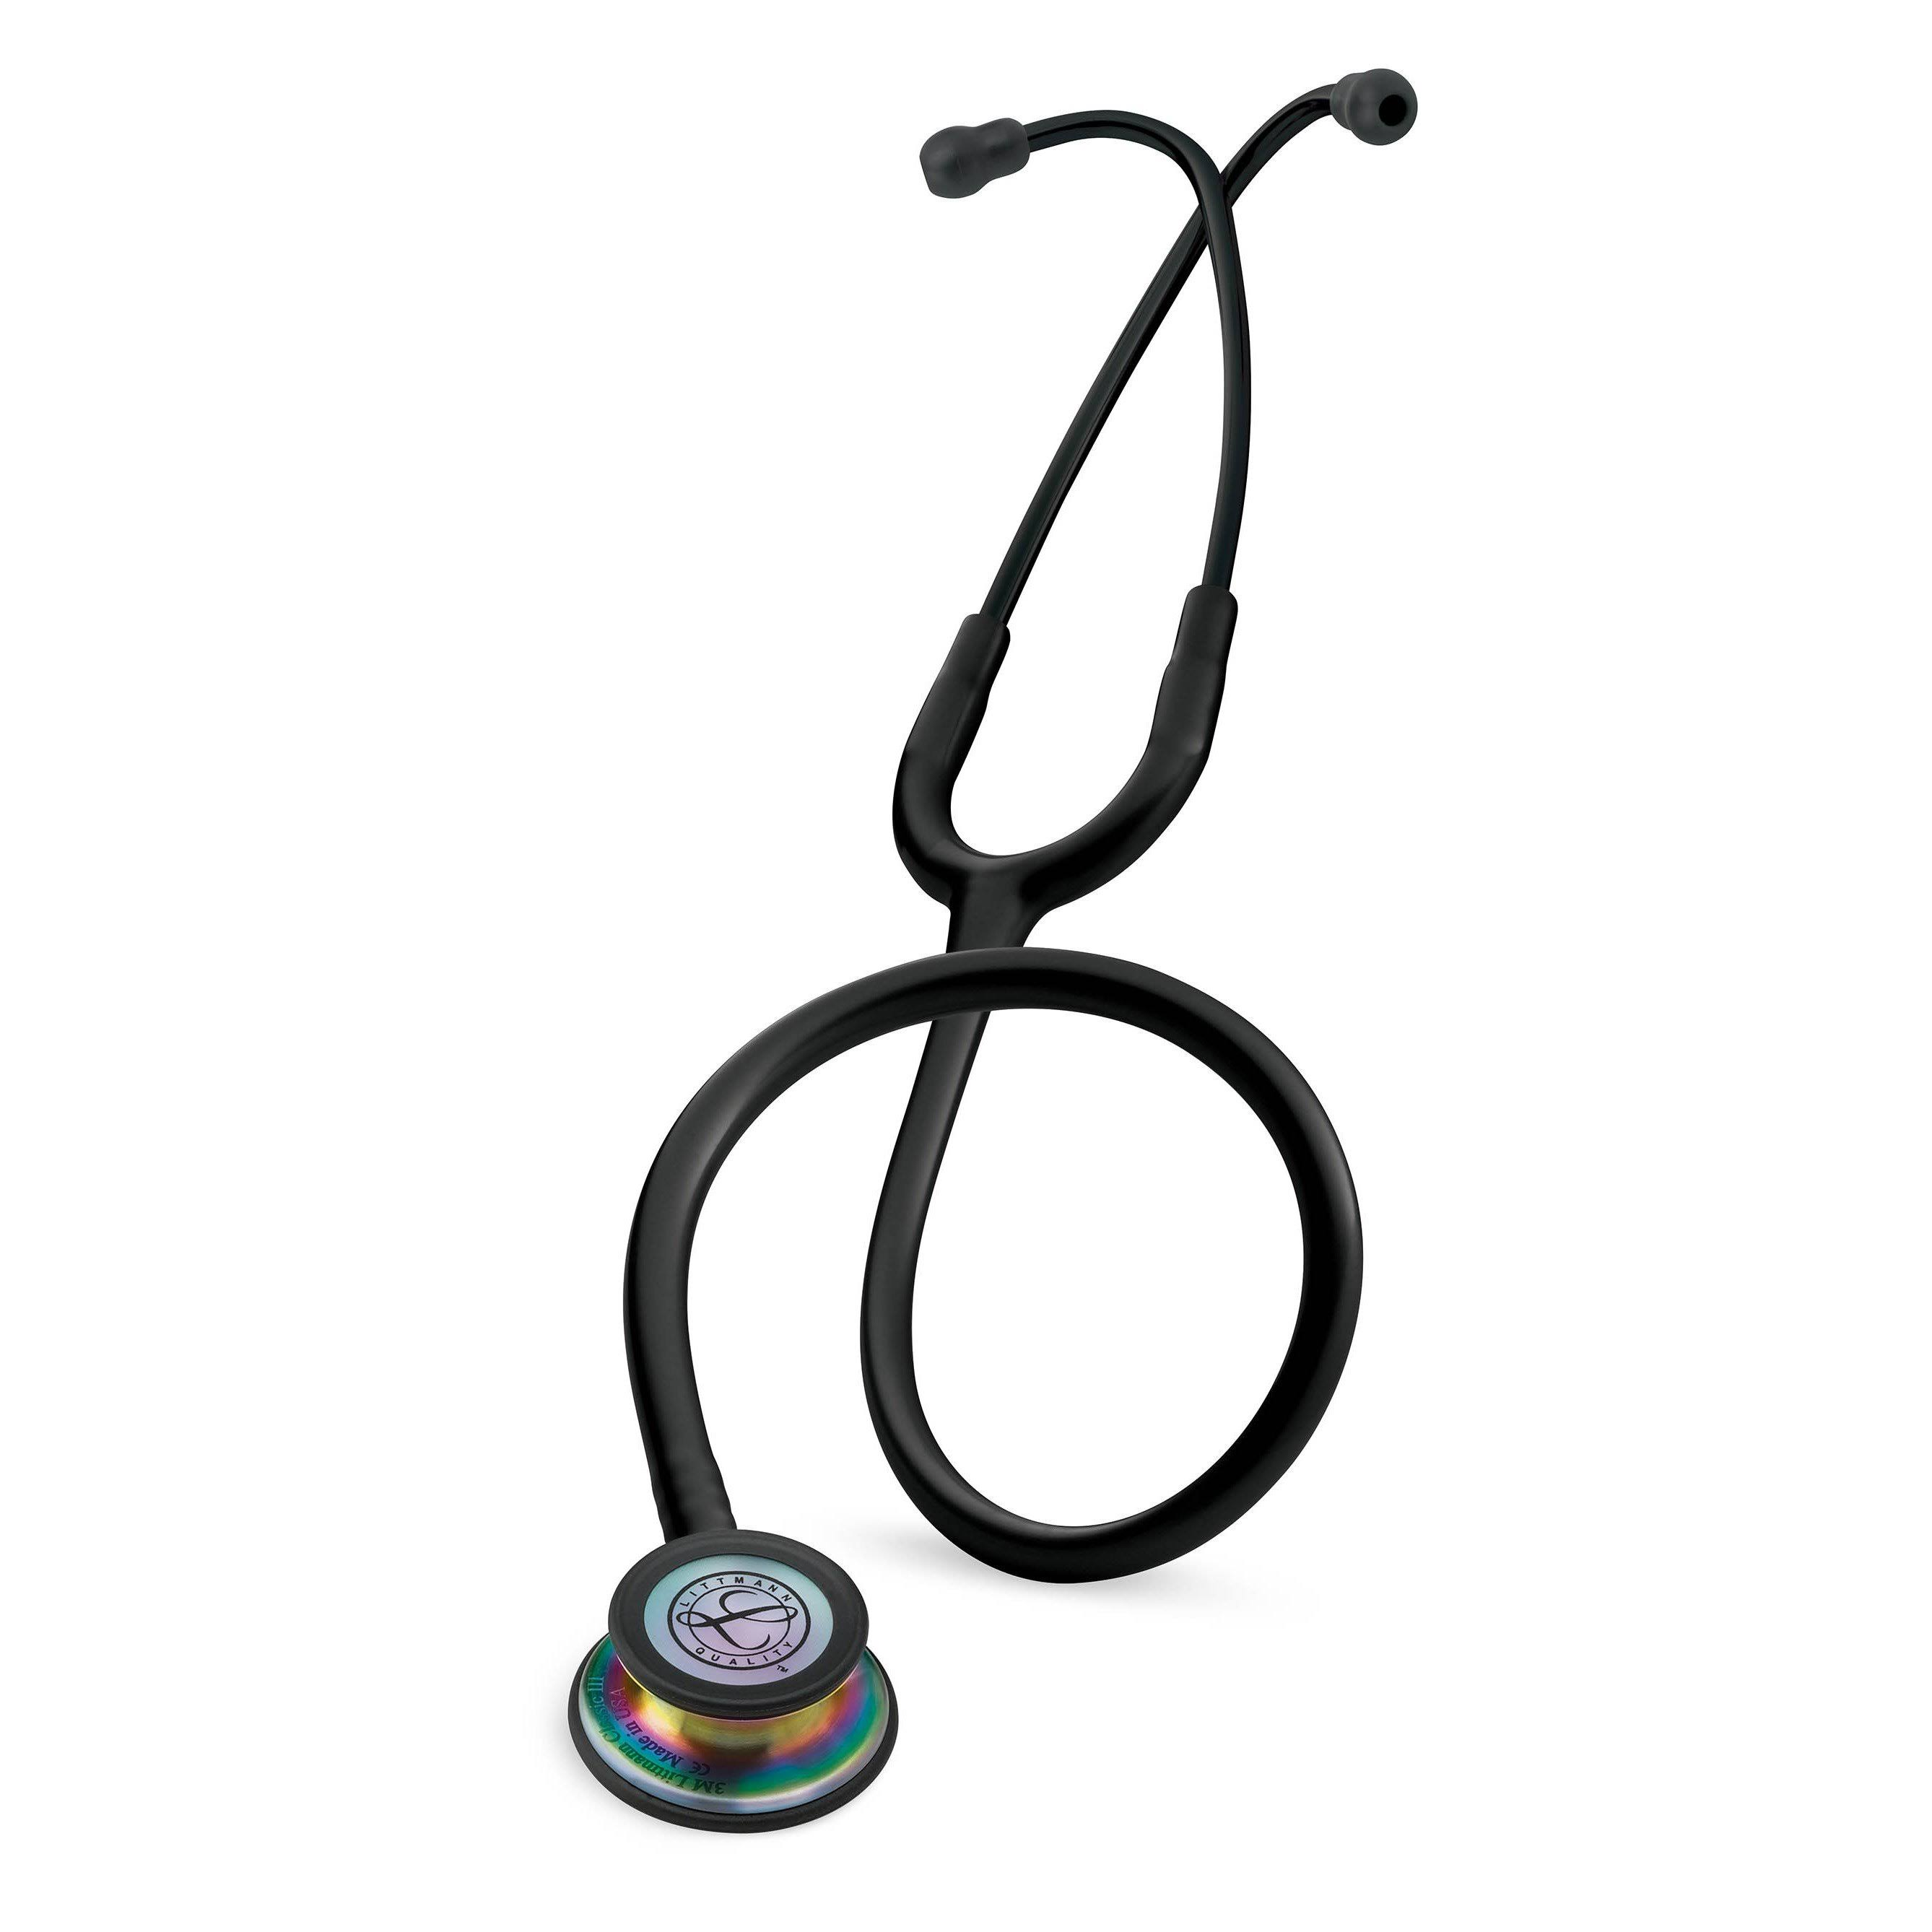 Littmann Classic III Stethoscope - Rainbow Finish Chestpiece, Black Tube, 27""